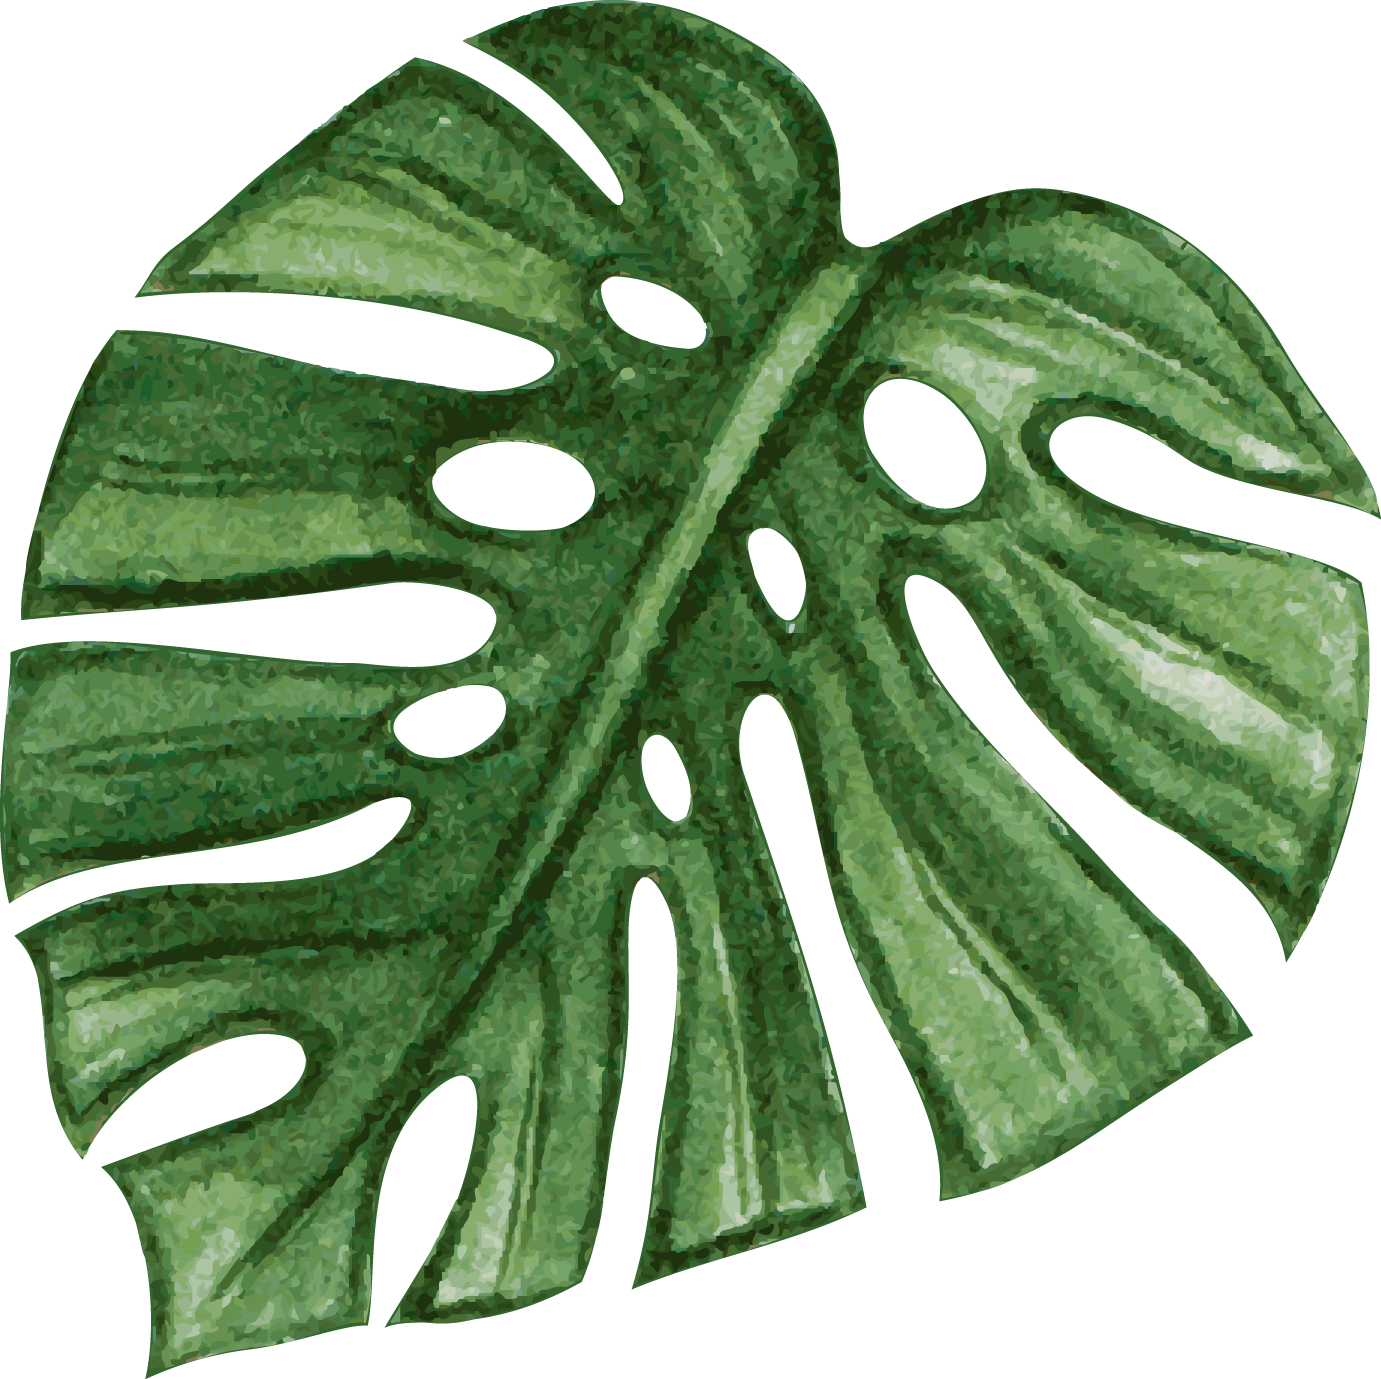 palm08.png